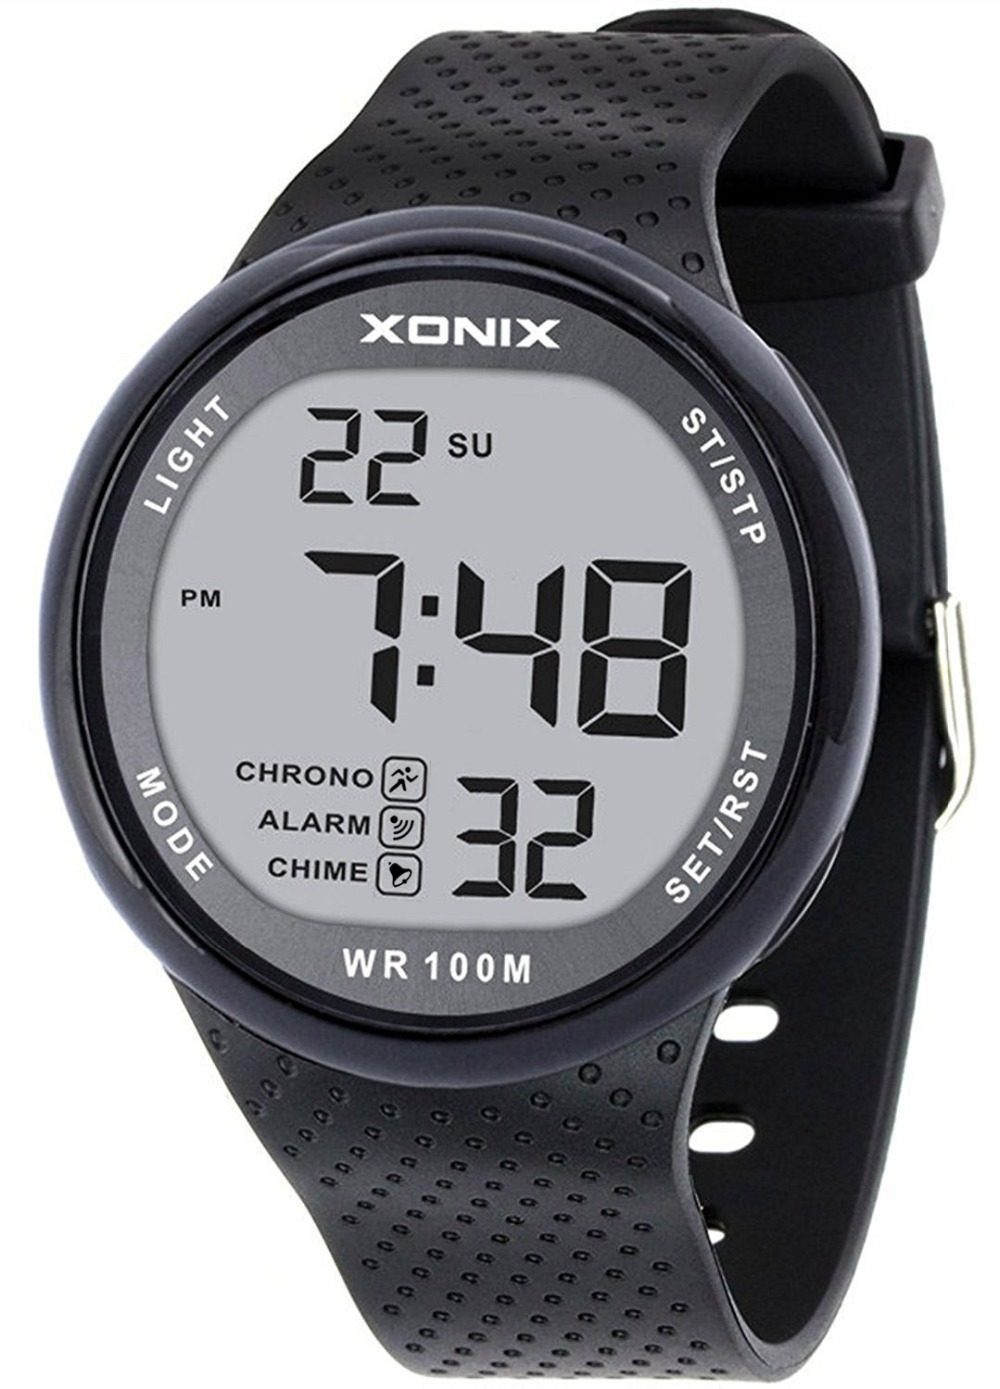 TOMORO Vogue Men's <font><b>100M</b></font> Waterproof Sports Black Resin Large Digits Digital Dive Watch (Can Be Pressed Underwater) image